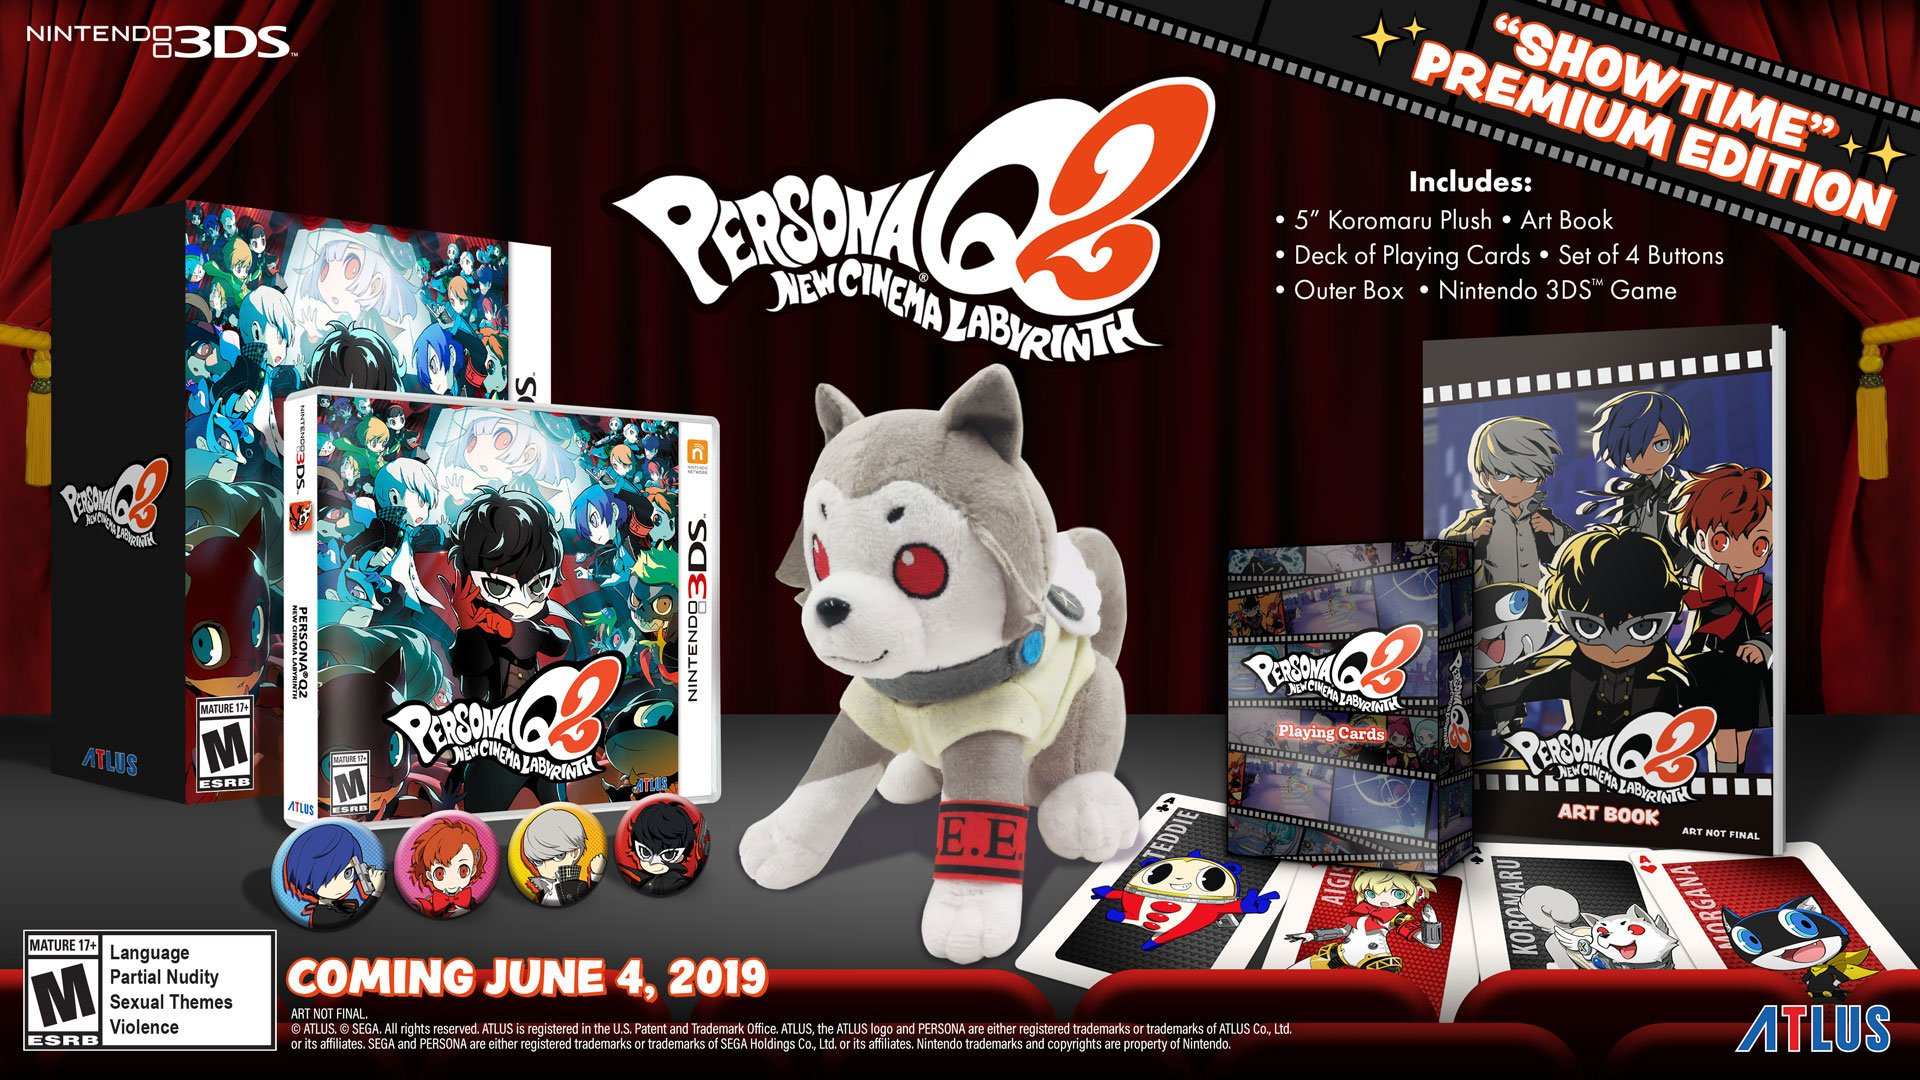 Persona Q2: New Cinema Labyrinth coming west in June